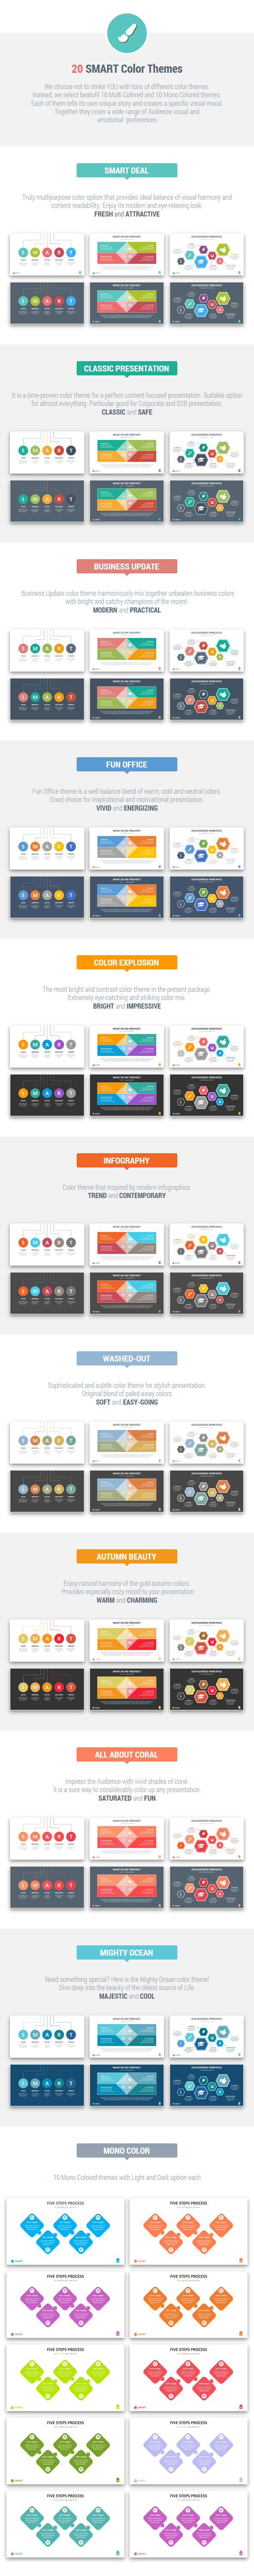 UNIVERSE - Multipurpose PowerPoint Template - 4